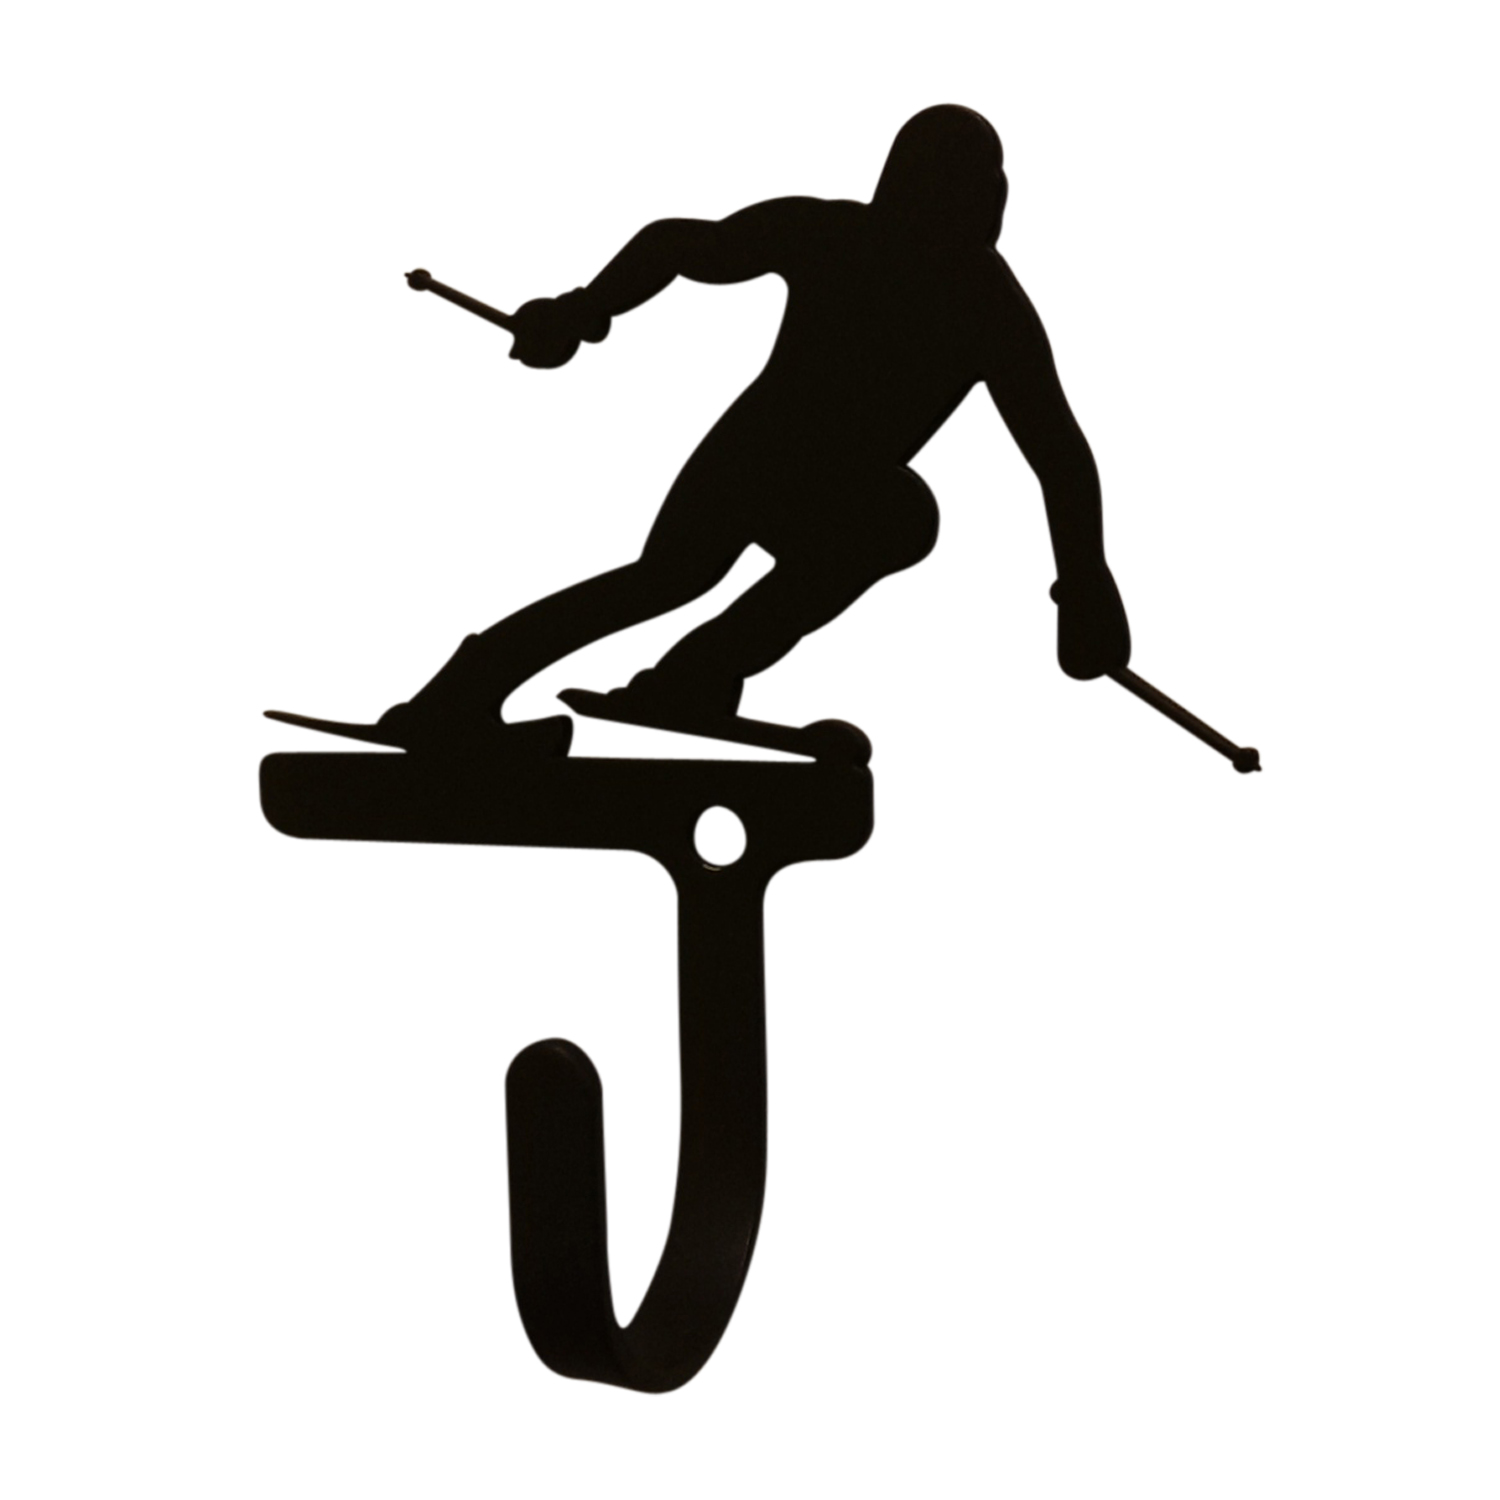 NEW - Skier - Wall Hook Small